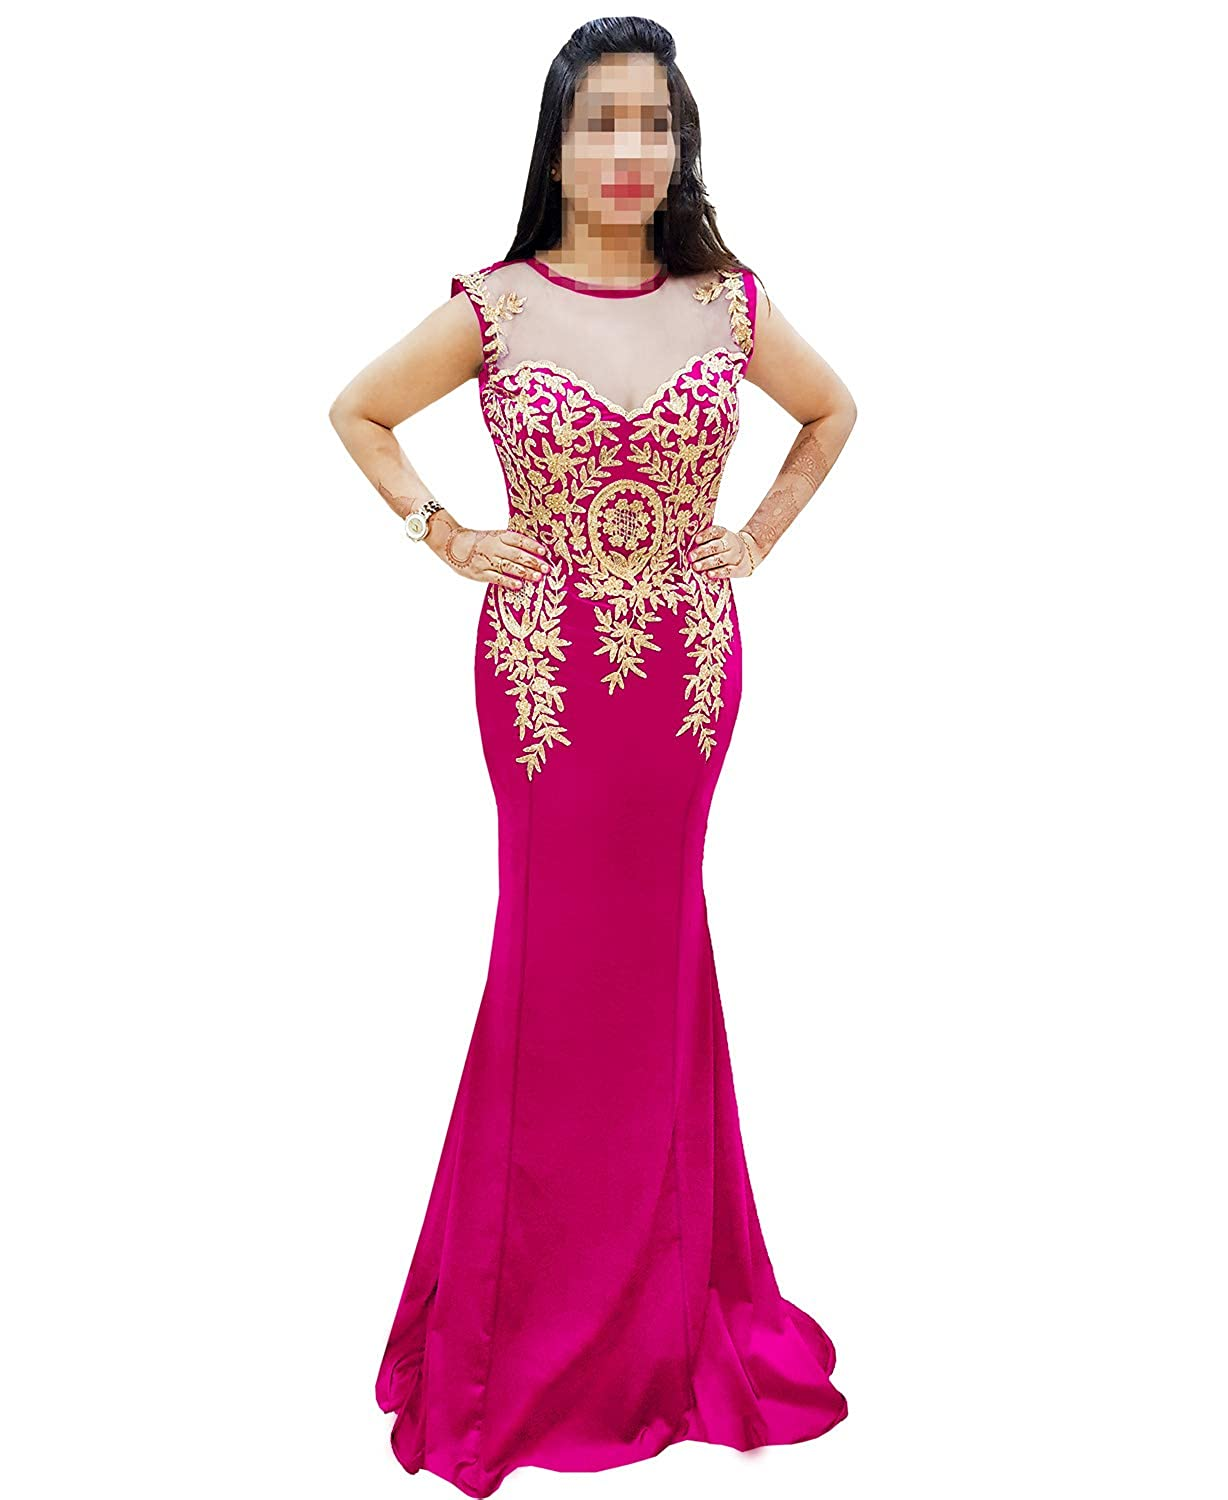 Fuchsia African Boutique Women's Rhinestone Long Zari Embroidery Formal Mermaid Evening Prom Dresses